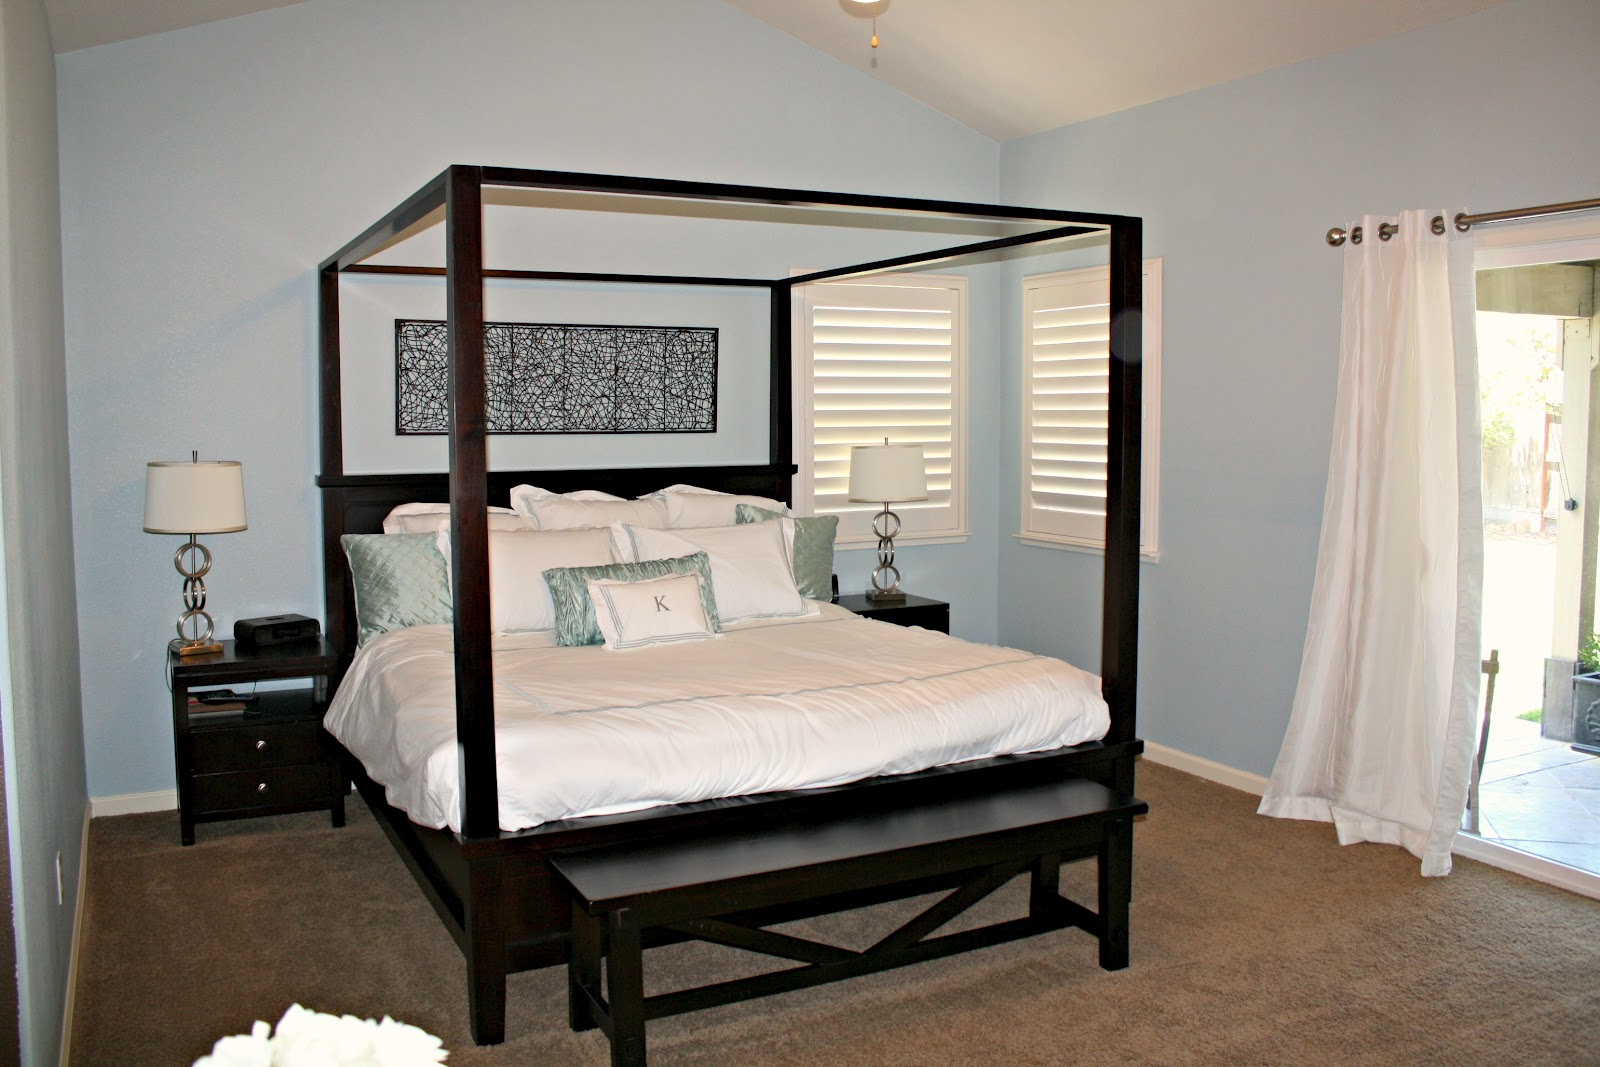 All things katie marie bedroom makeover tuesday august 7 2012 amipublicfo Image collections